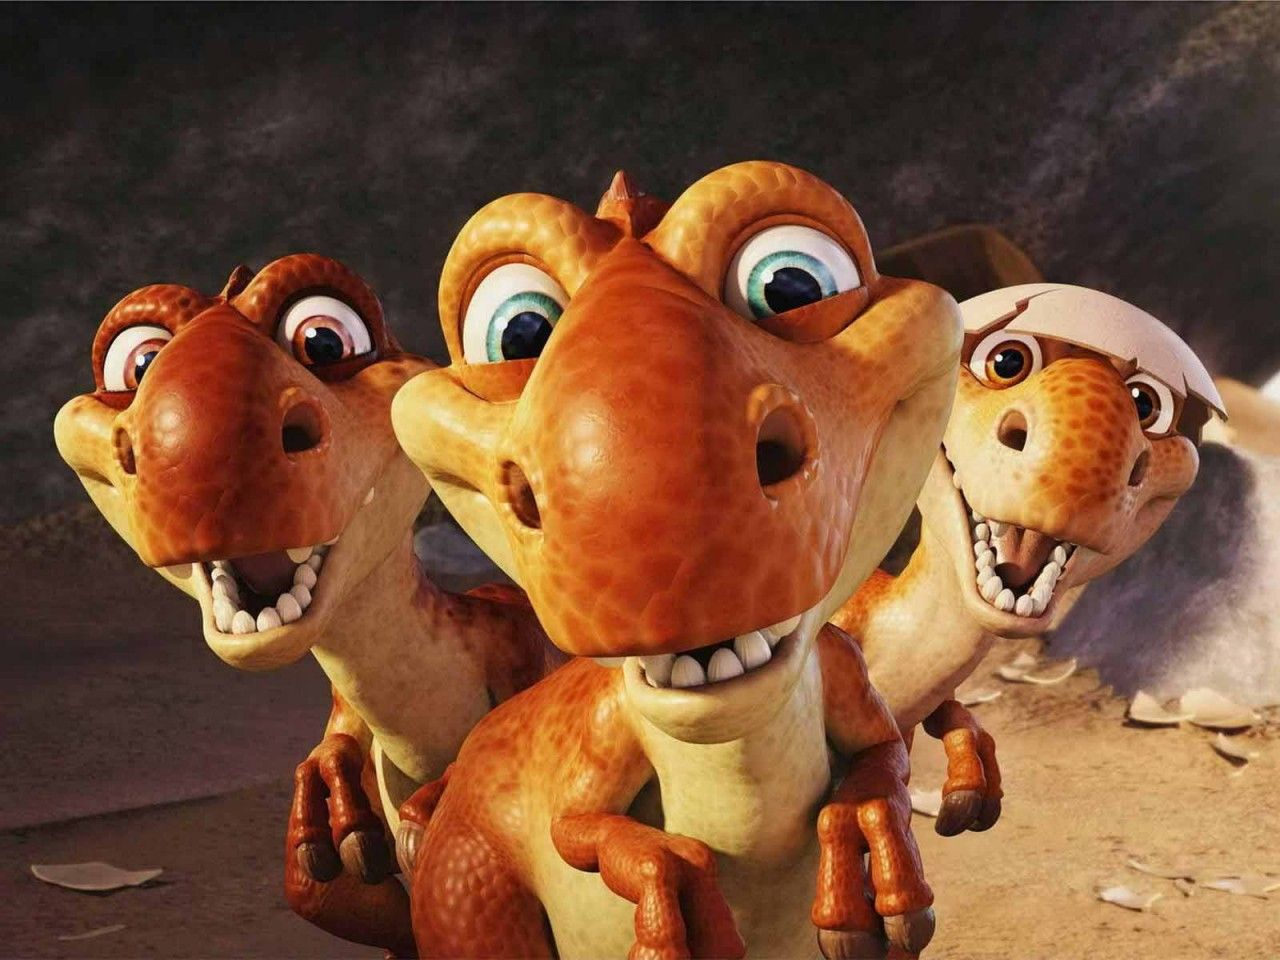 Cute Hd Dinosaurs Baby With Images Dinosaur Wallpaper Cartoon